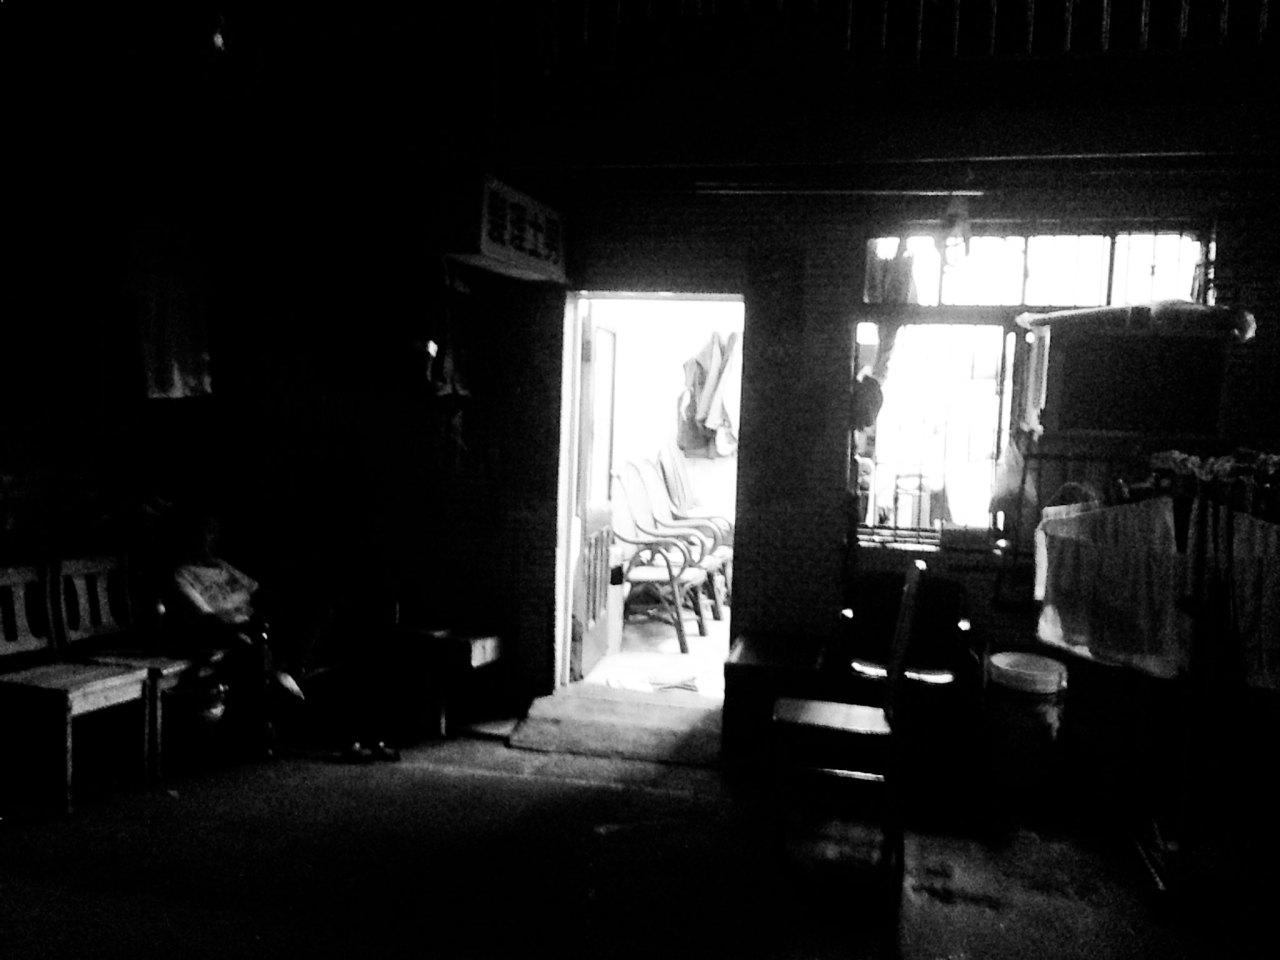 man's barber shop hidden in a narrow alley where we found an old man's barber shop, 200 NT get you a 15 mins quicky cut and a wash in a fly, the elderly woman whom has opened the shop for over thirty years, carries a great casual attitude, this place is far away from what you would normally experienced in a luxury salon,and  that's why we love it! 隱藏在一條狹窄的小巷,我們發現一間古老的男士理髮店,200元新台幣讓你在15分鐘內完成剪與洗,老婦人開店鋪超過三十年,友善的服務心態,這地方給你在一家通常豪華的沙龍裡所體驗不到的經歷,這就是為什麼我們喜歡它! No.41, Ln. 19, Tonghua St., Da'an Dist., Taipei City 106, Taiwan (R.O.C.) 台北市通化街19巷41號